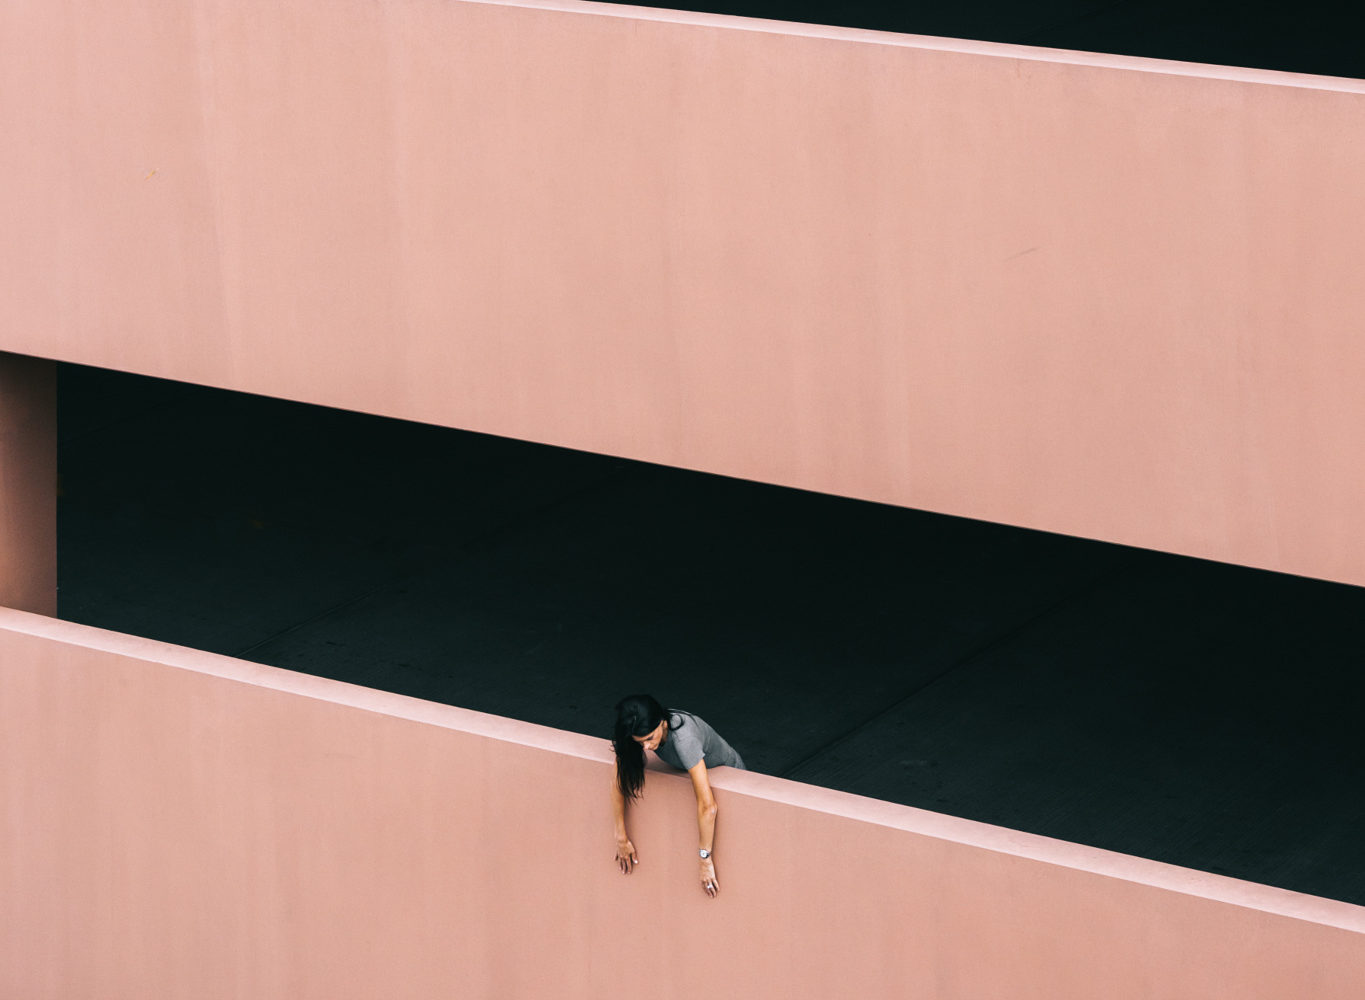 32 Colorful, Winning Photos That Will Catch Your Eye